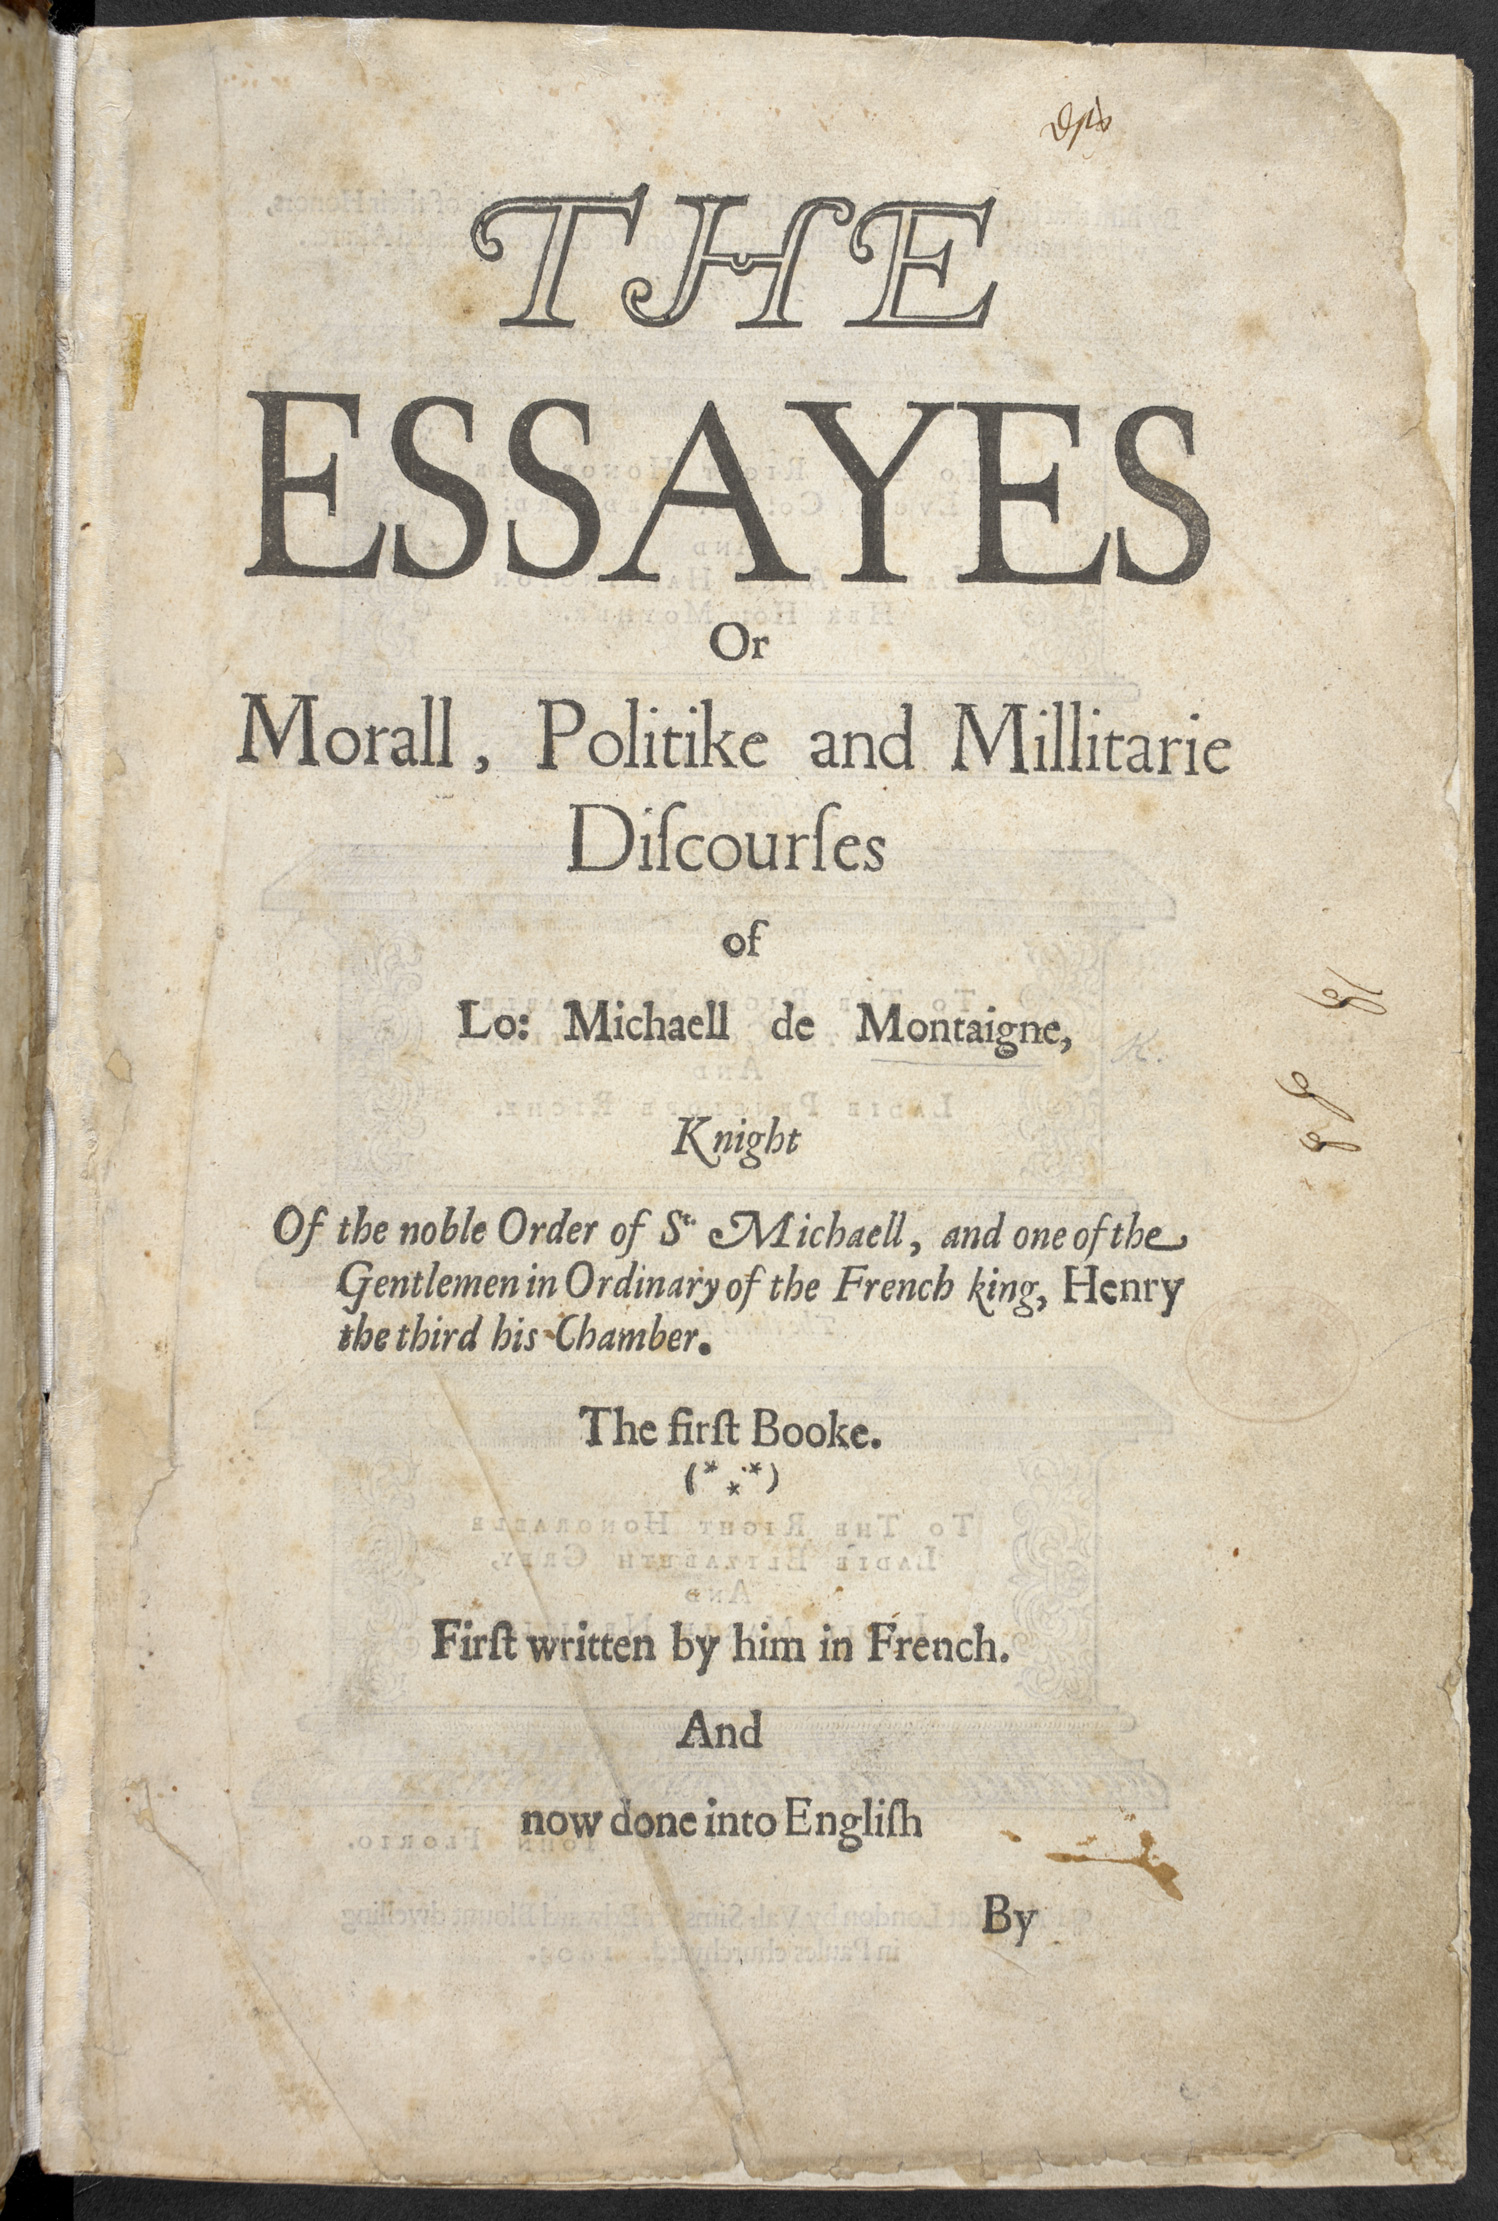 Montaigne's Essays translated by Florio - The British Library